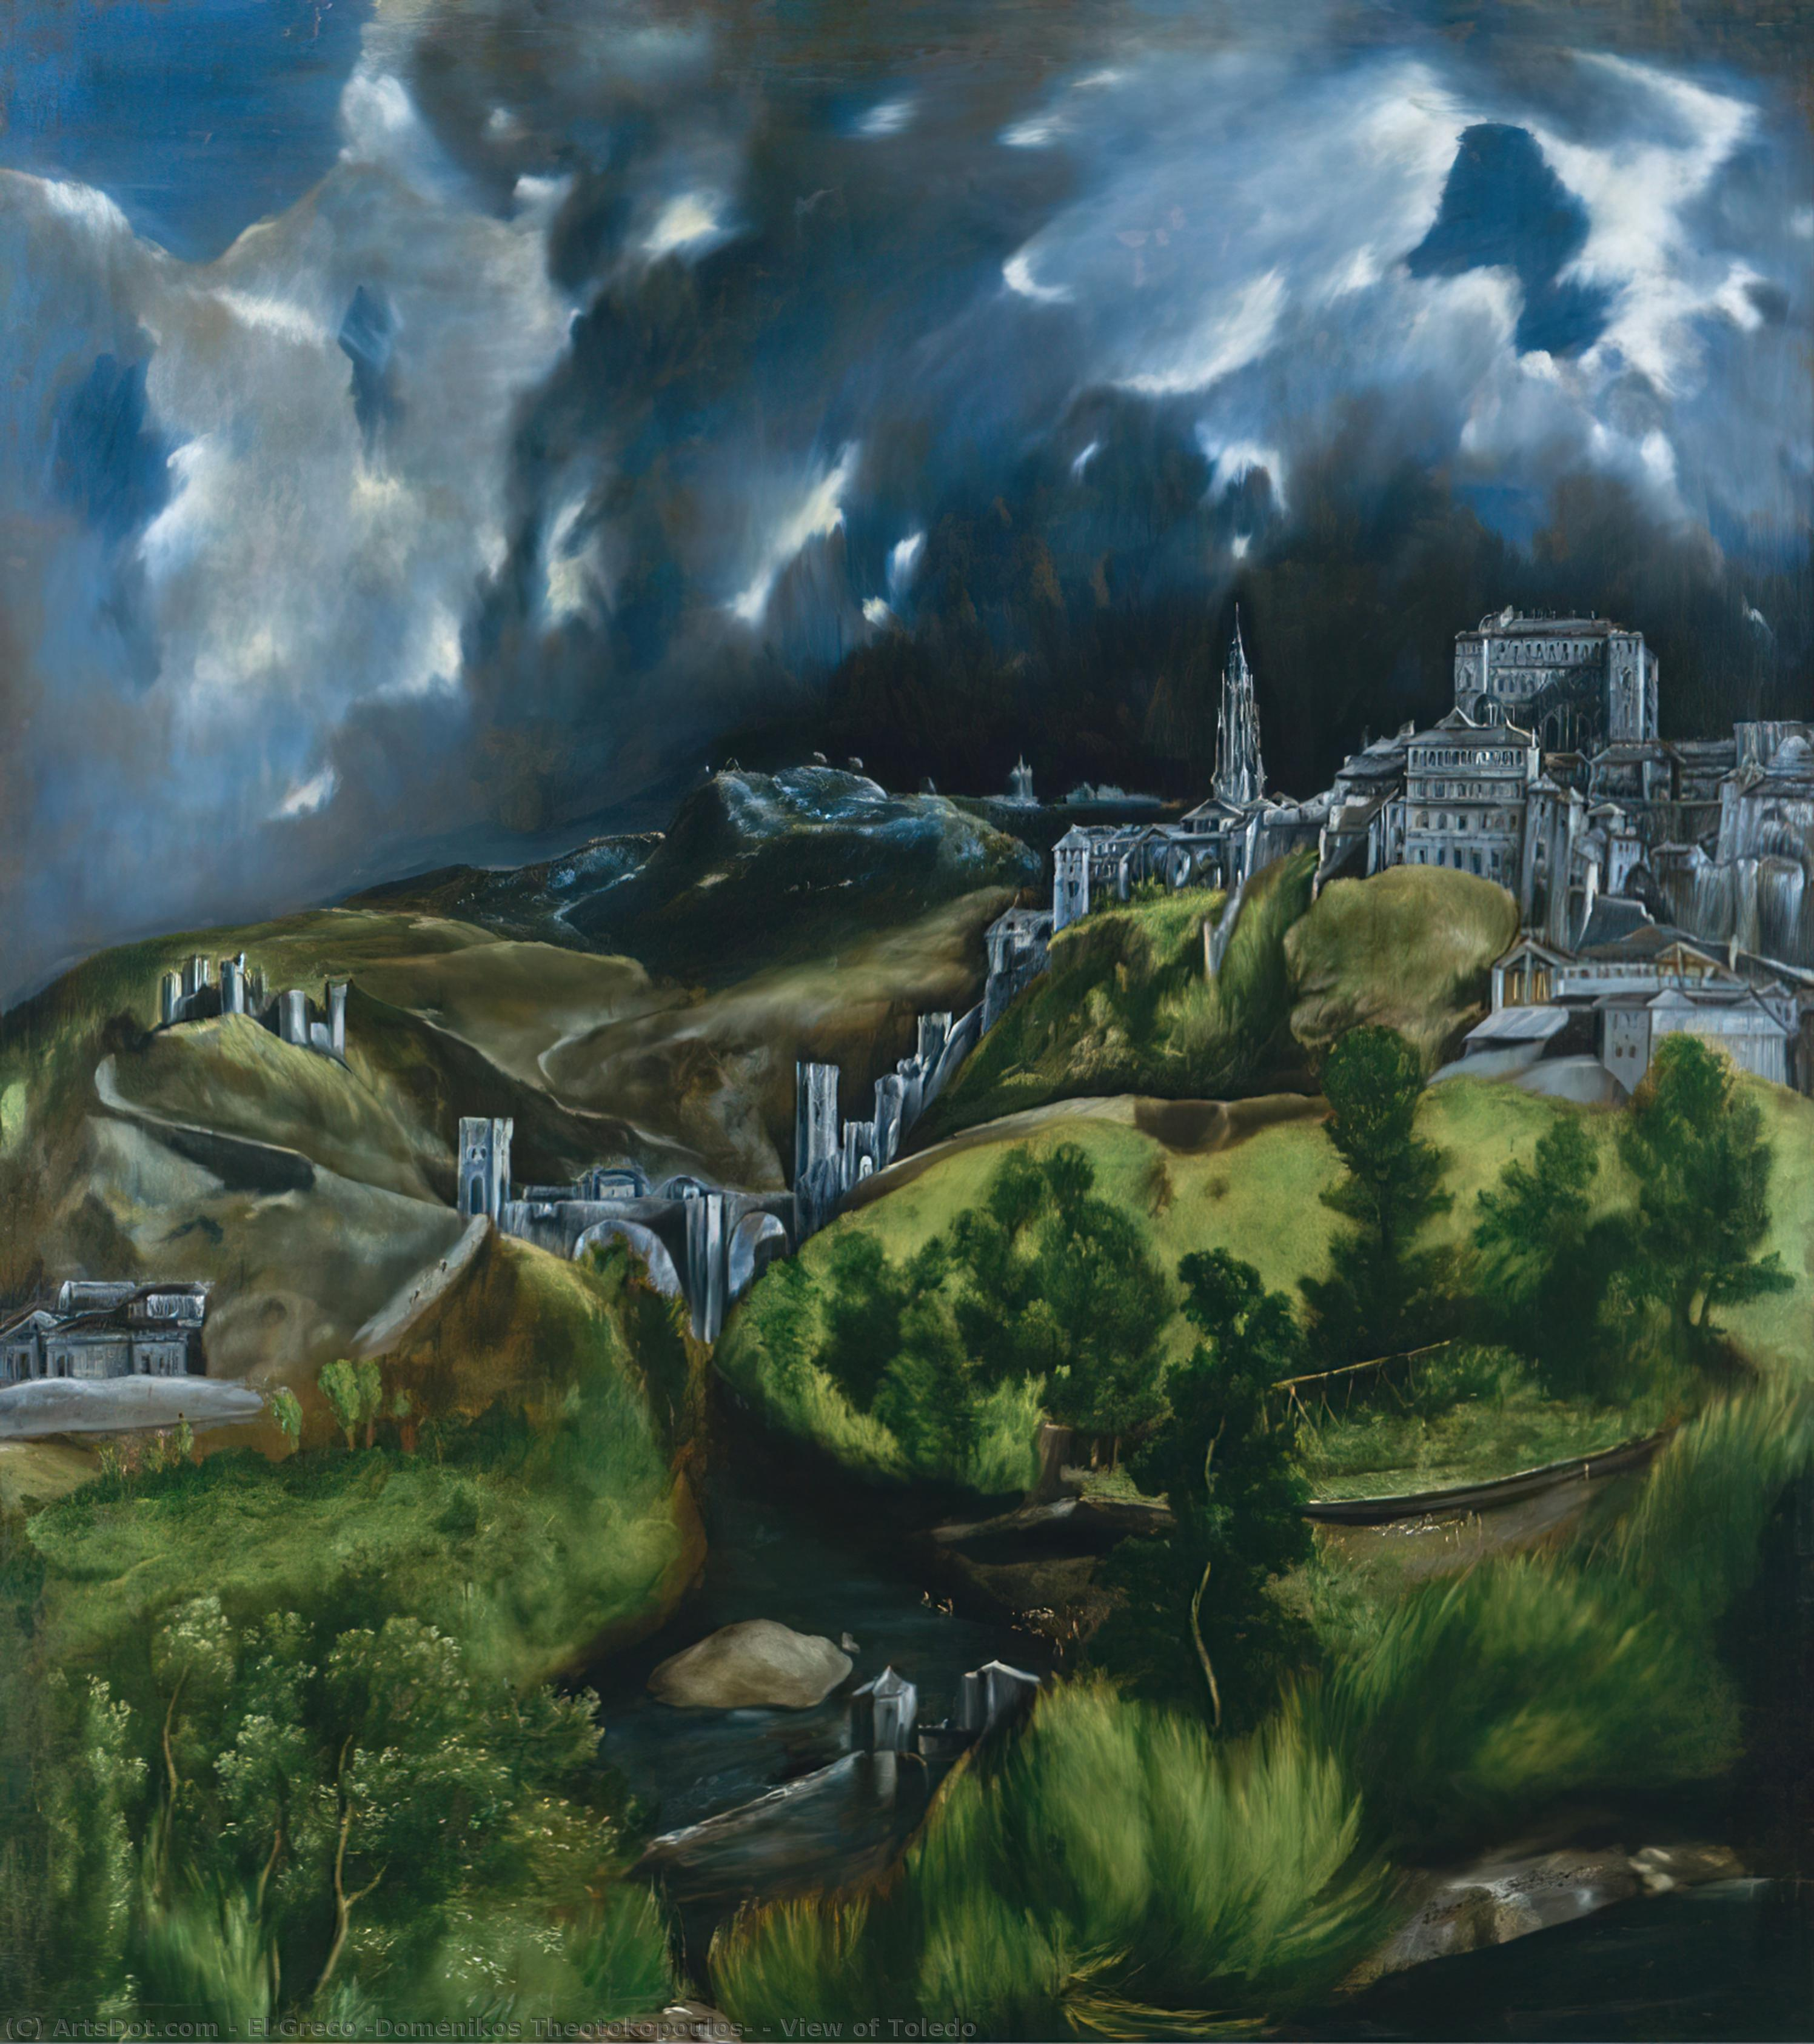 Wikioo.org - The Encyclopedia of Fine Arts - Painting, Artwork by El Greco (Doménikos Theotokopoulos) - View of Toledo